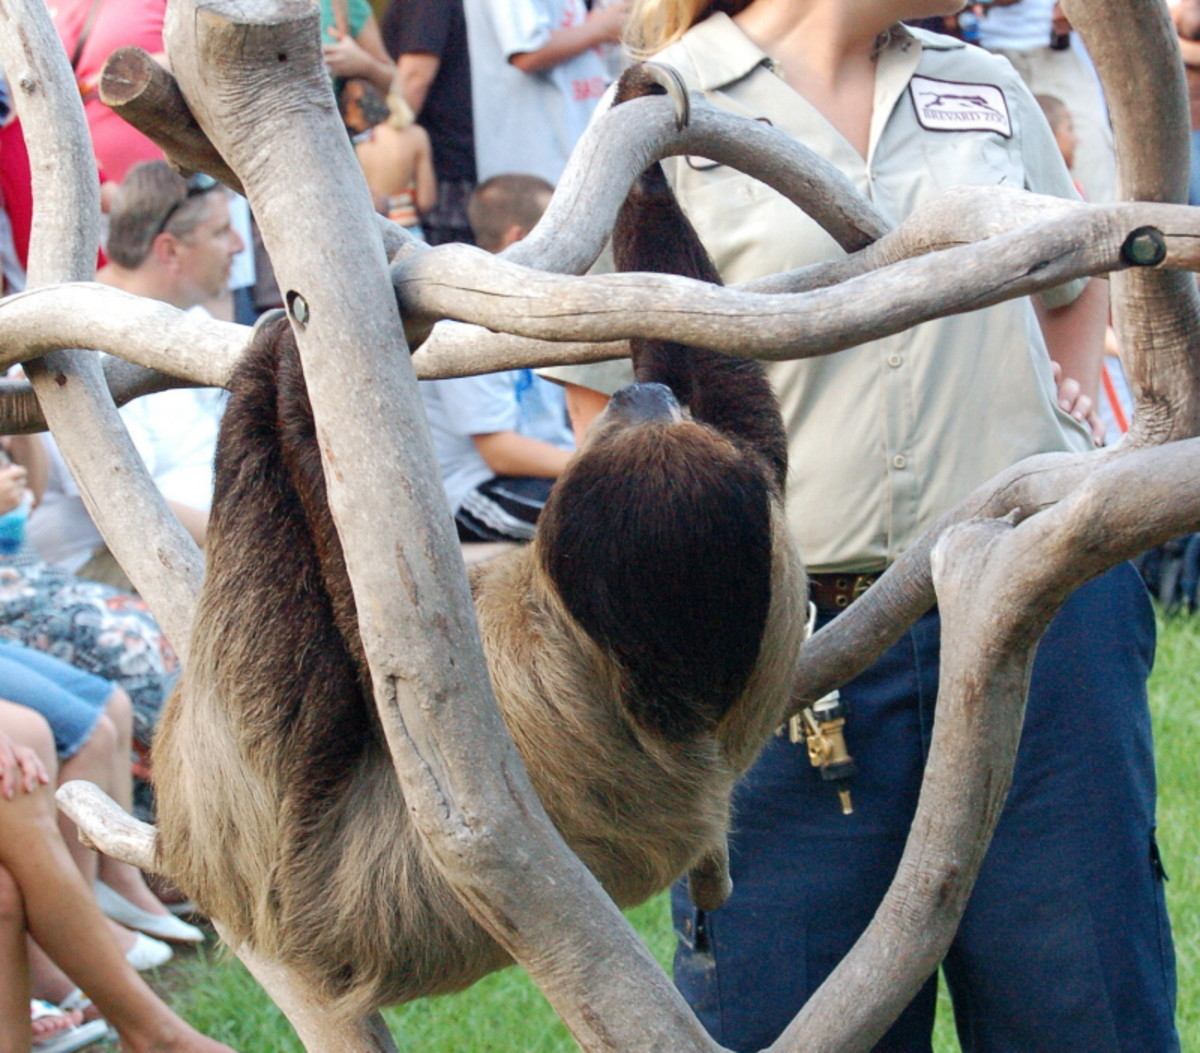 Sloth at Brevard Zoo